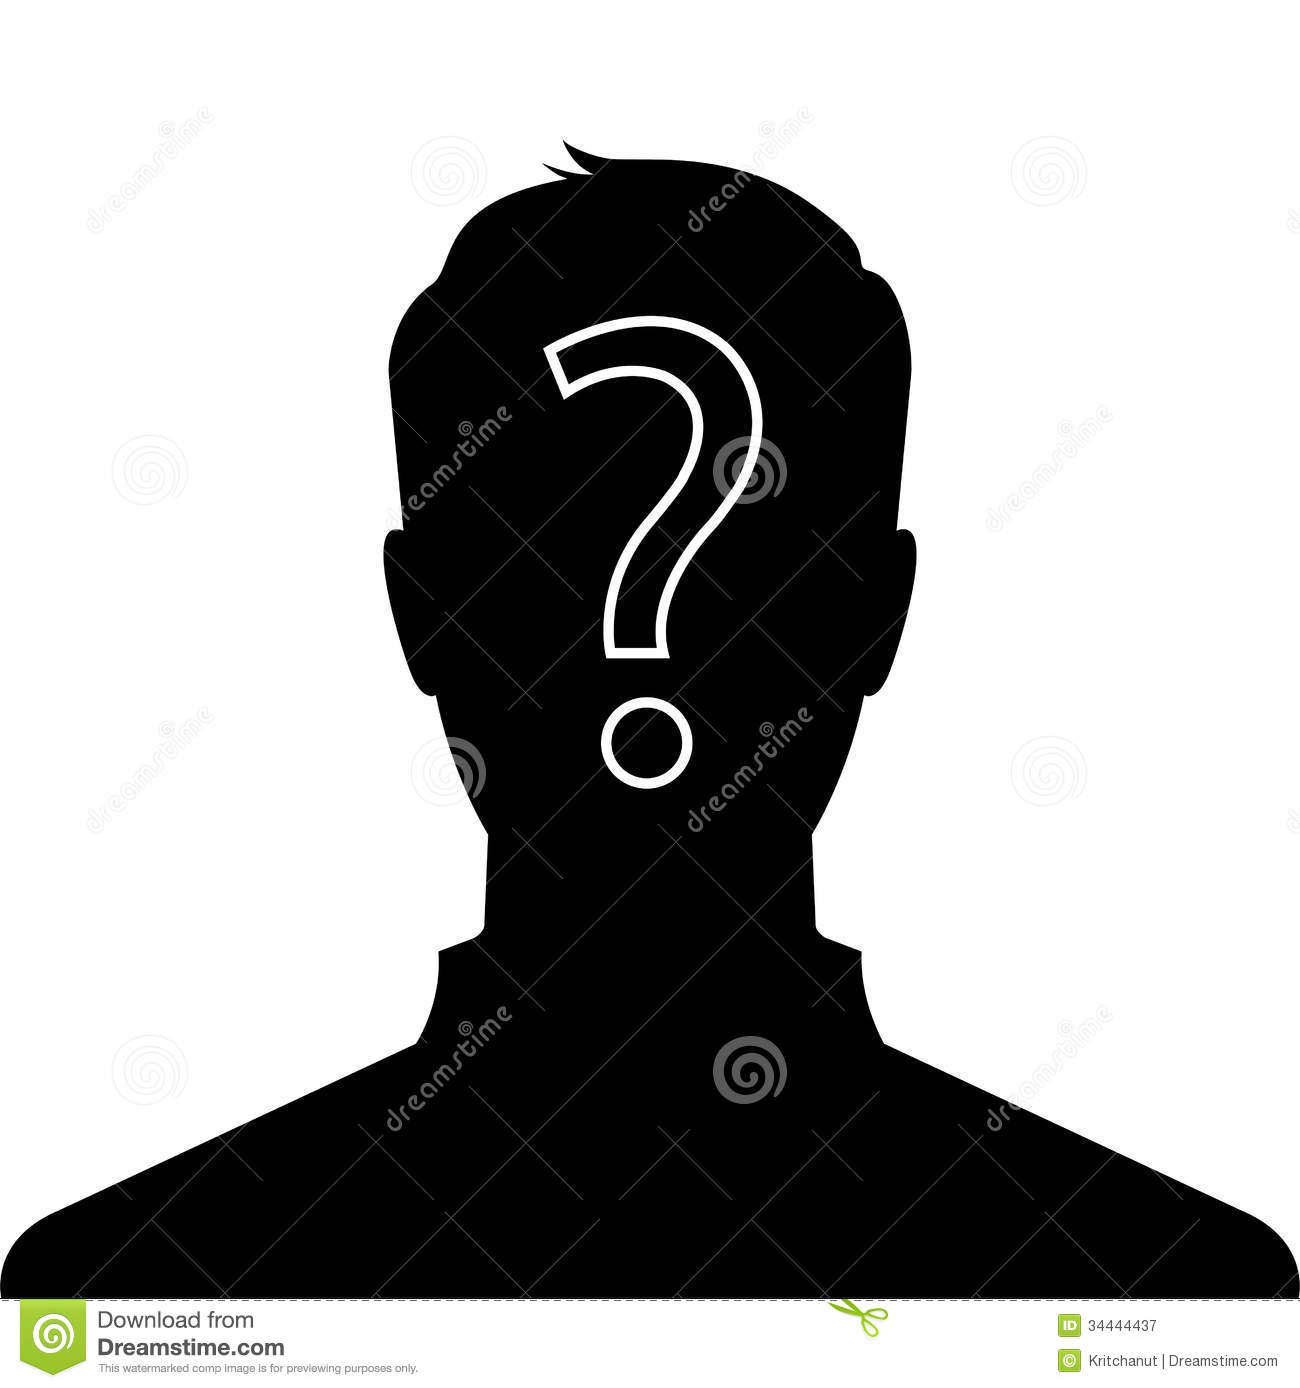 Man profile picture stock vector. Illustration of model ...